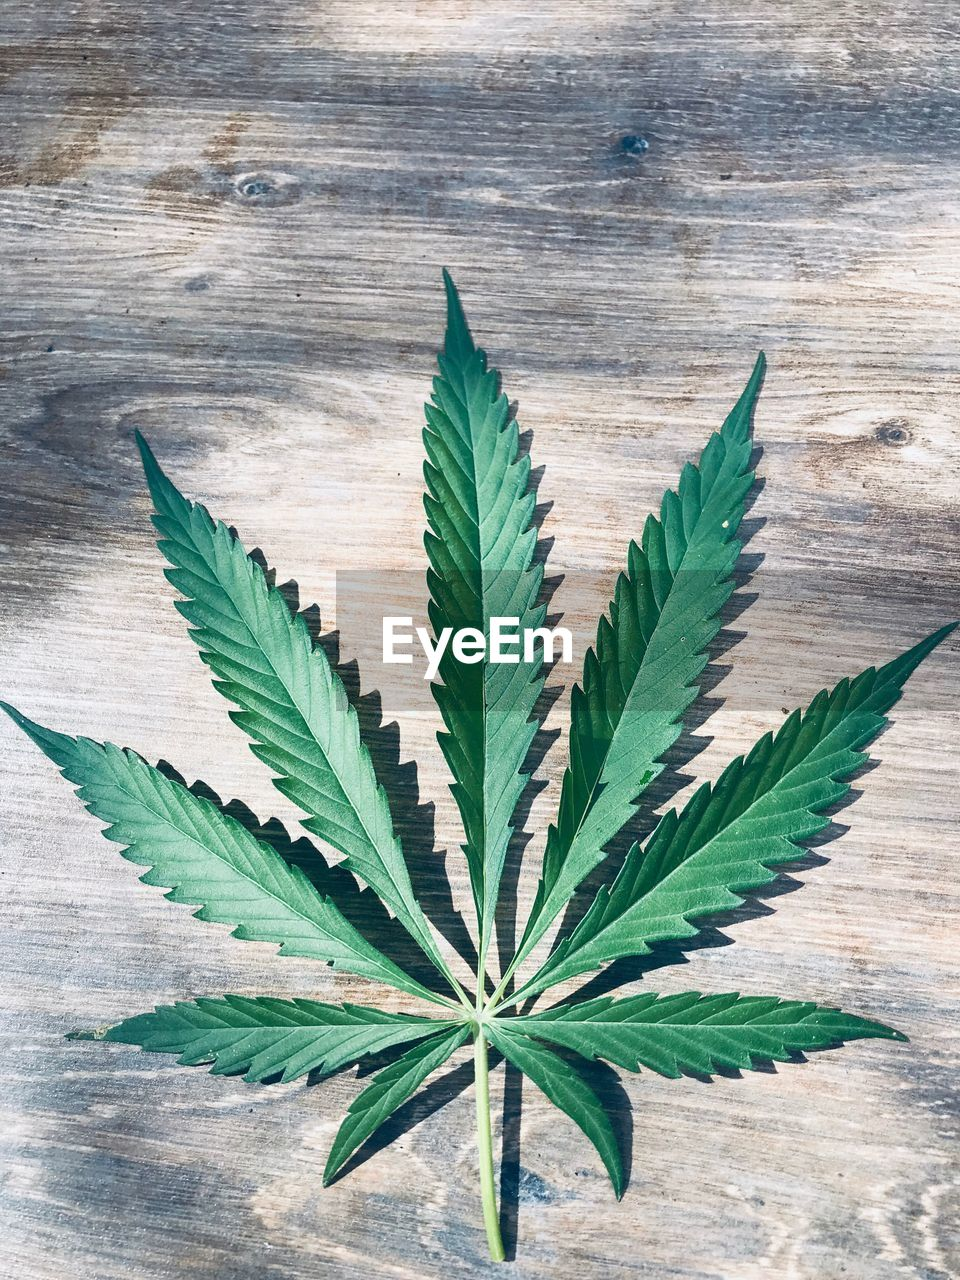 leaf, plant part, green color, close-up, marijuana - herbal cannabis, healthcare and medicine, indoors, medicine, no people, wood - material, nature, cannabis plant, plant, high angle view, narcotic, recreational drug, herbal medicine, directly above, growth, herb